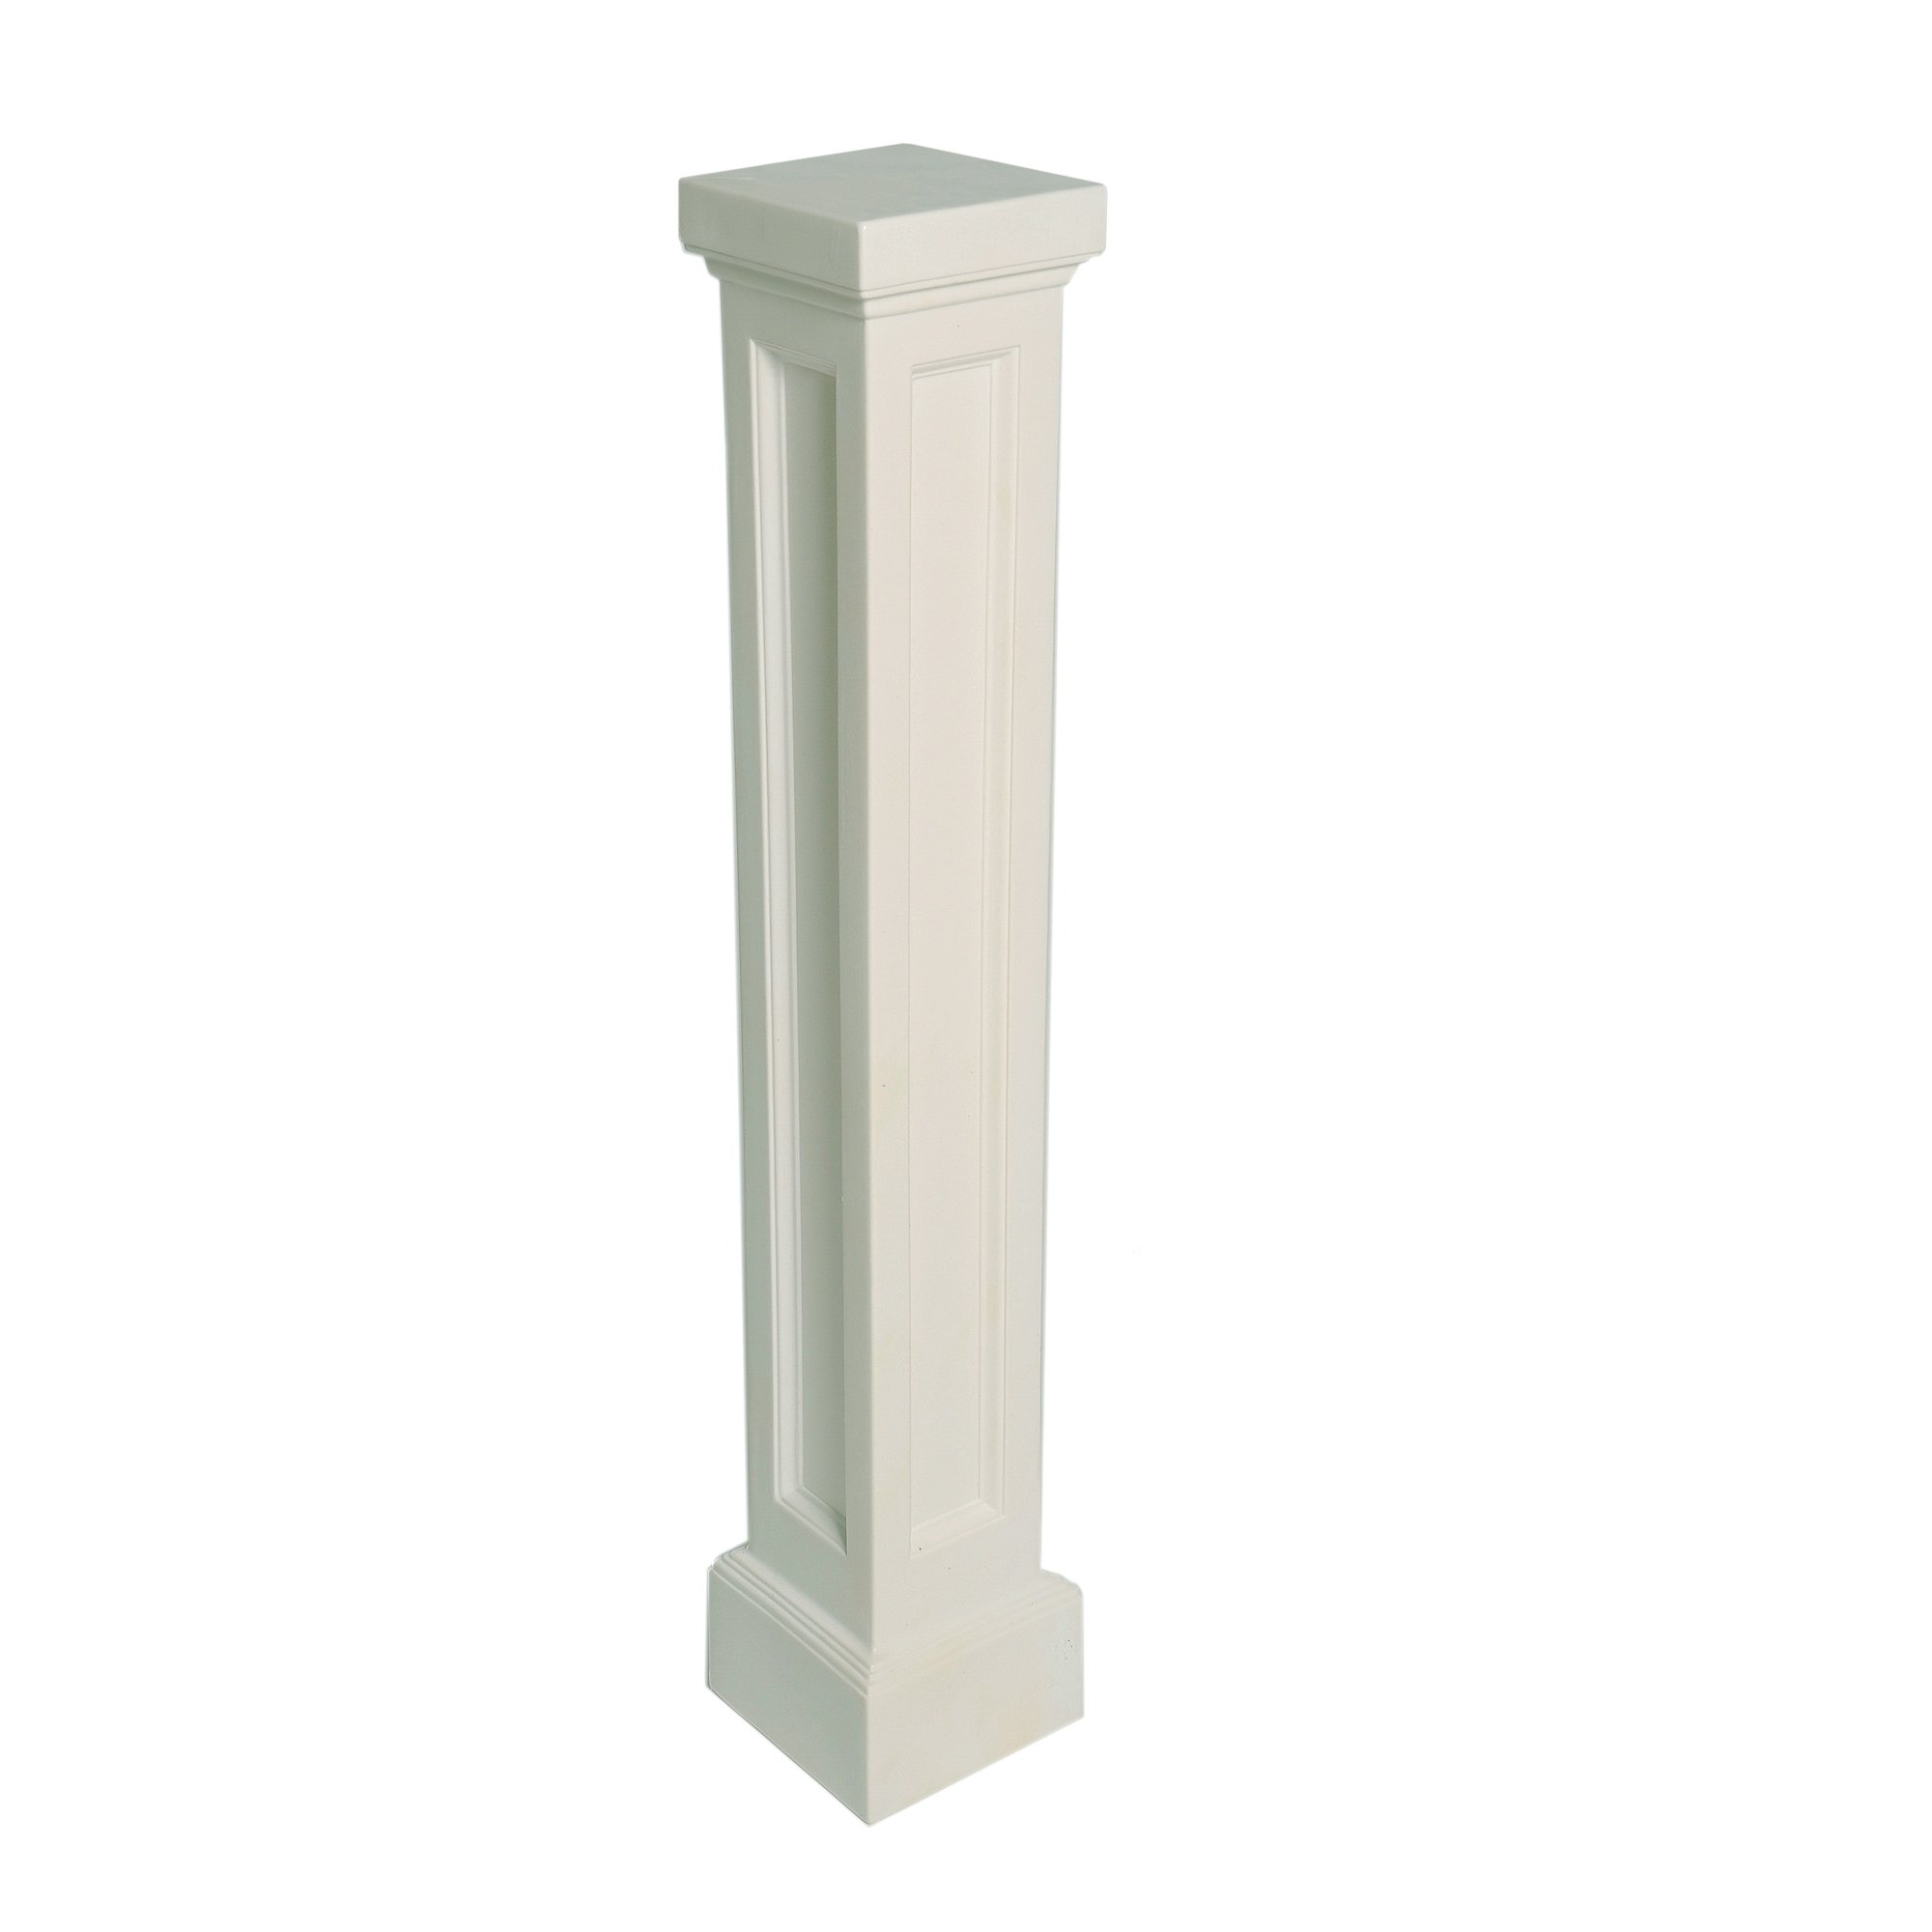 Mayne 581700000 Bradford Pedestal Mail Post Only, White